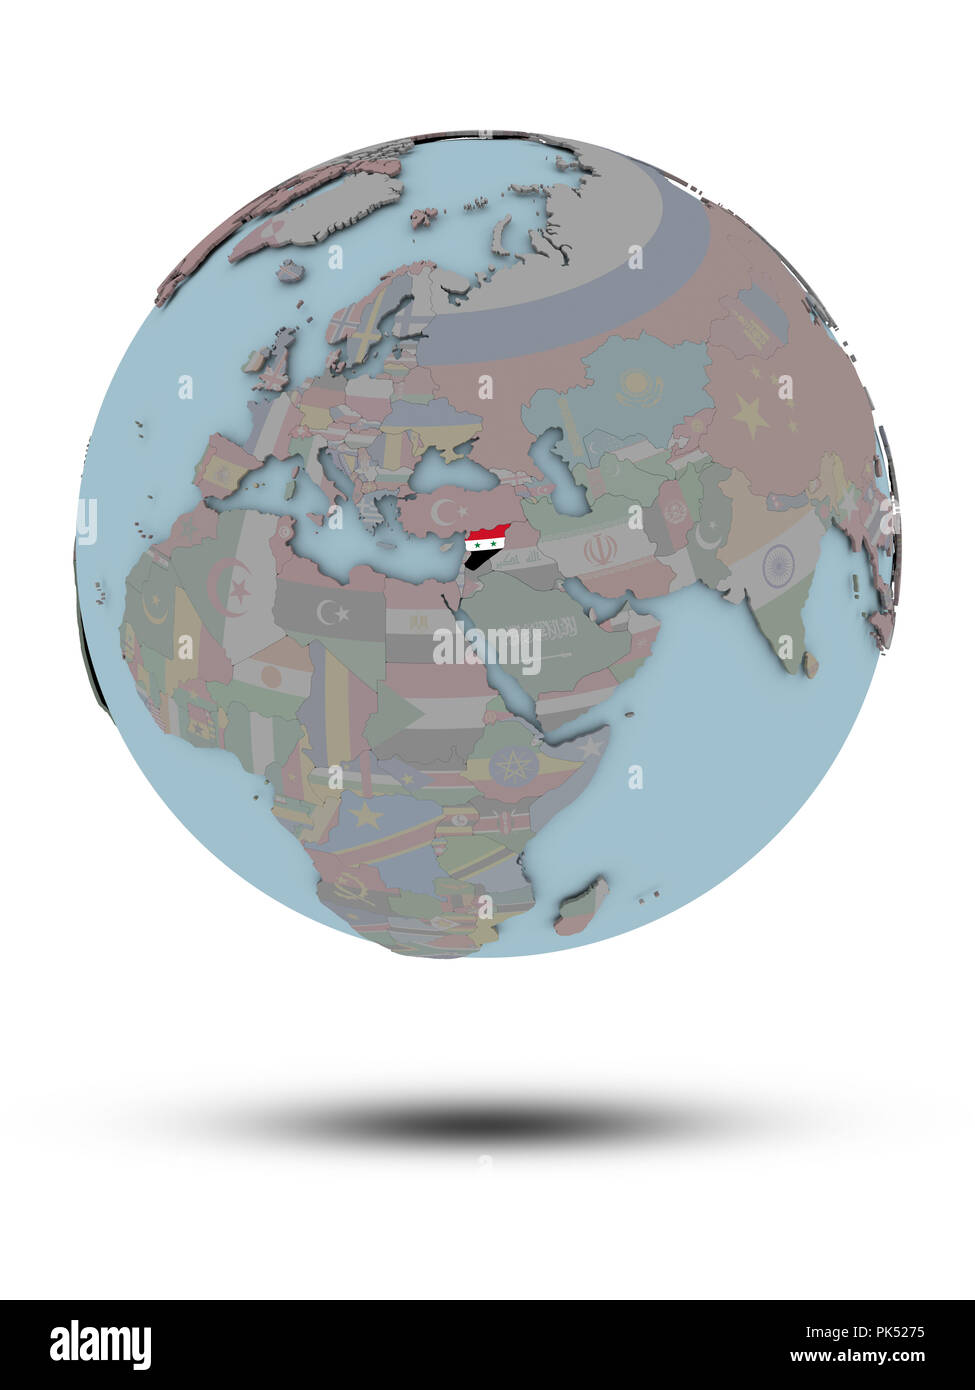 Syria with national flag on political globe with shadow isolated on white background. 3D illustration. - Stock Image